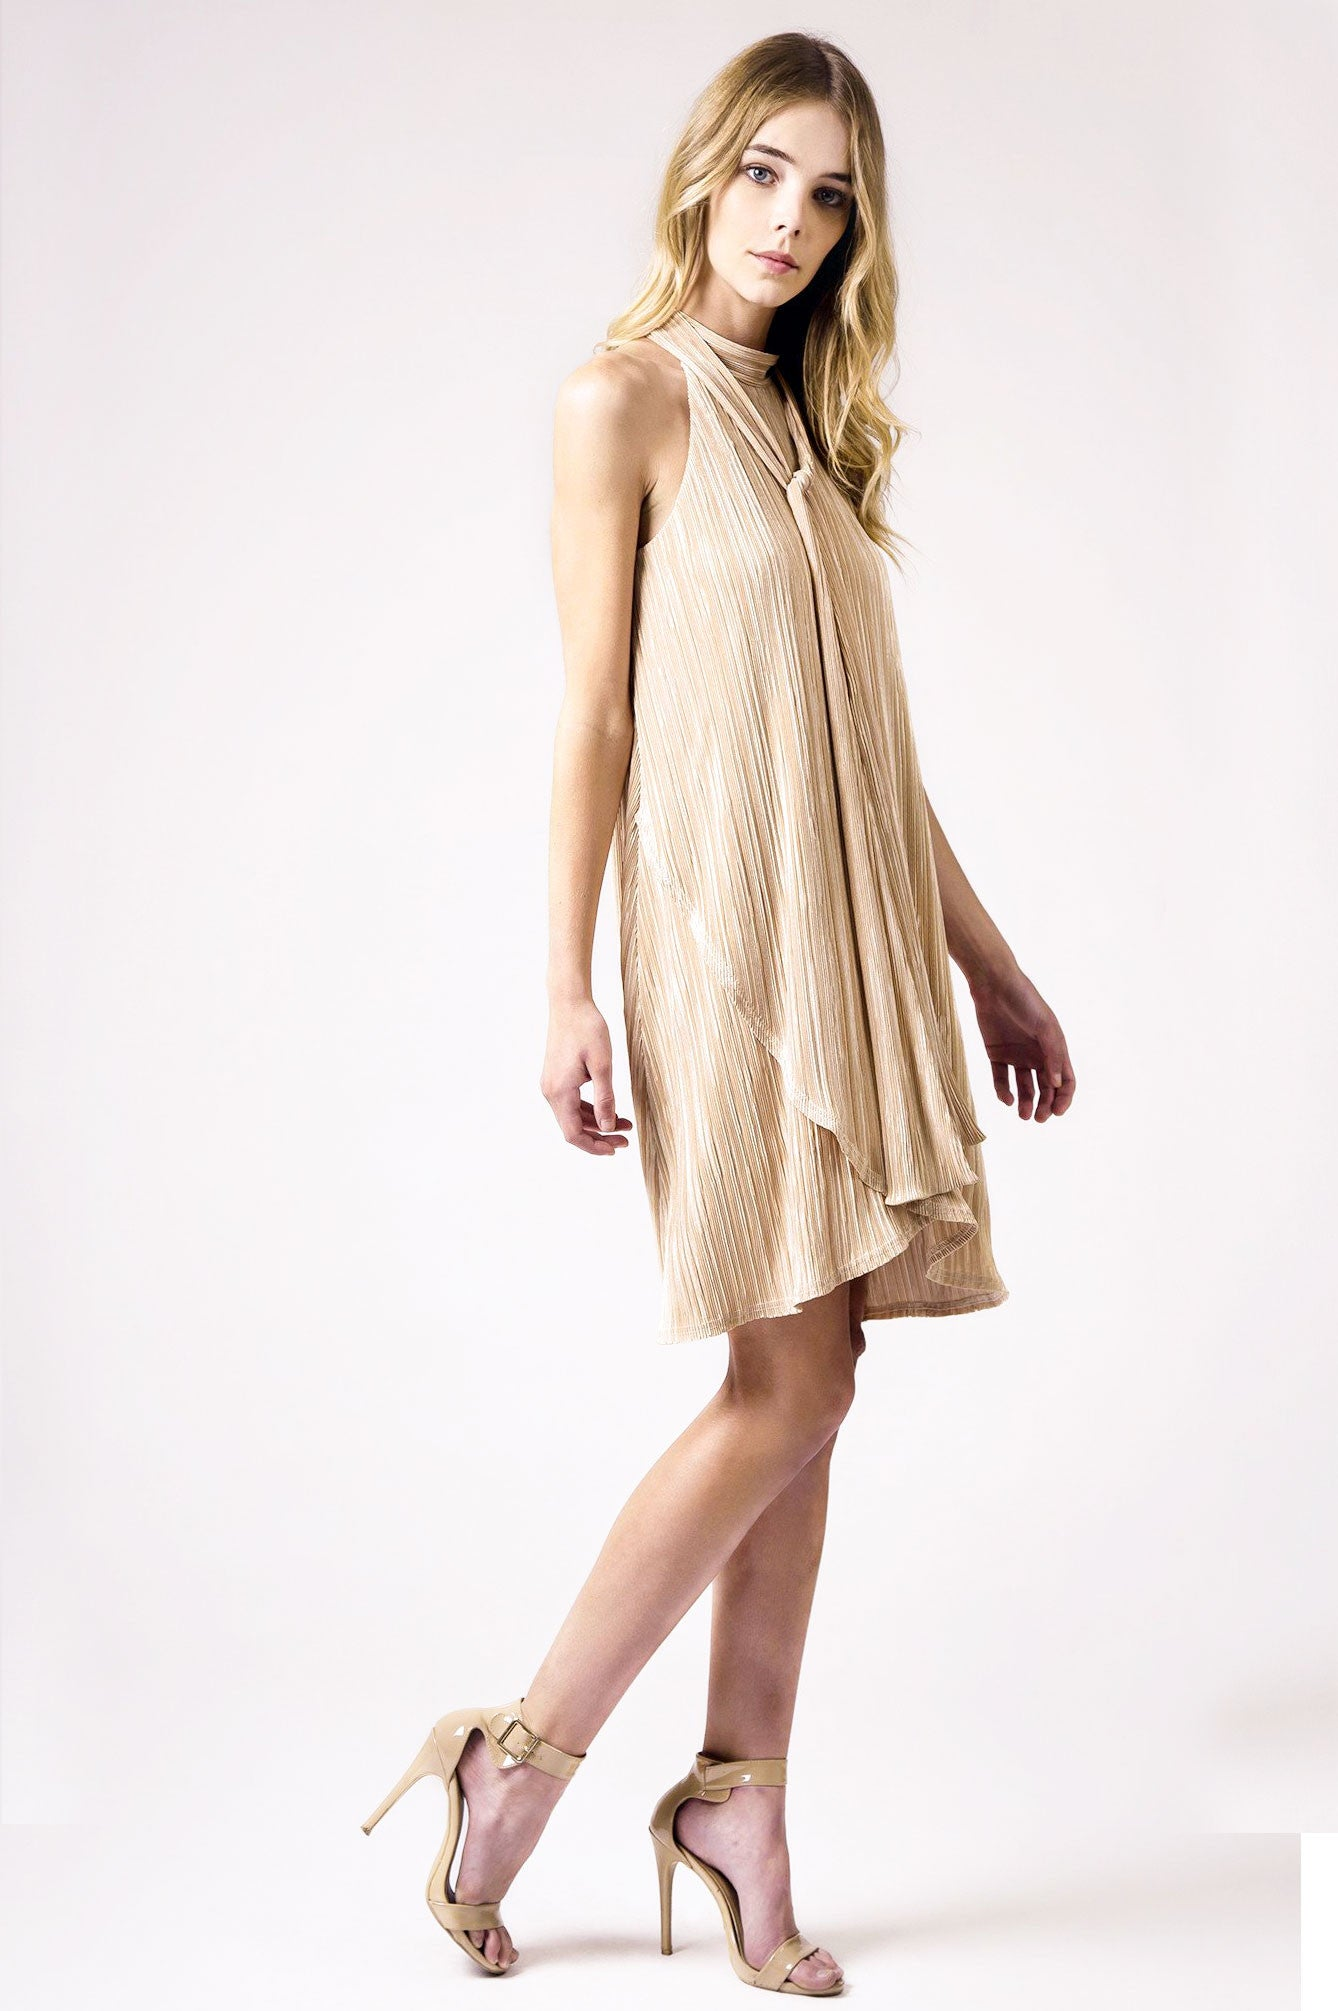 Women's sleeveless tie-neck pussybow mini swing cocktail party dress in mocha camel nude pleated